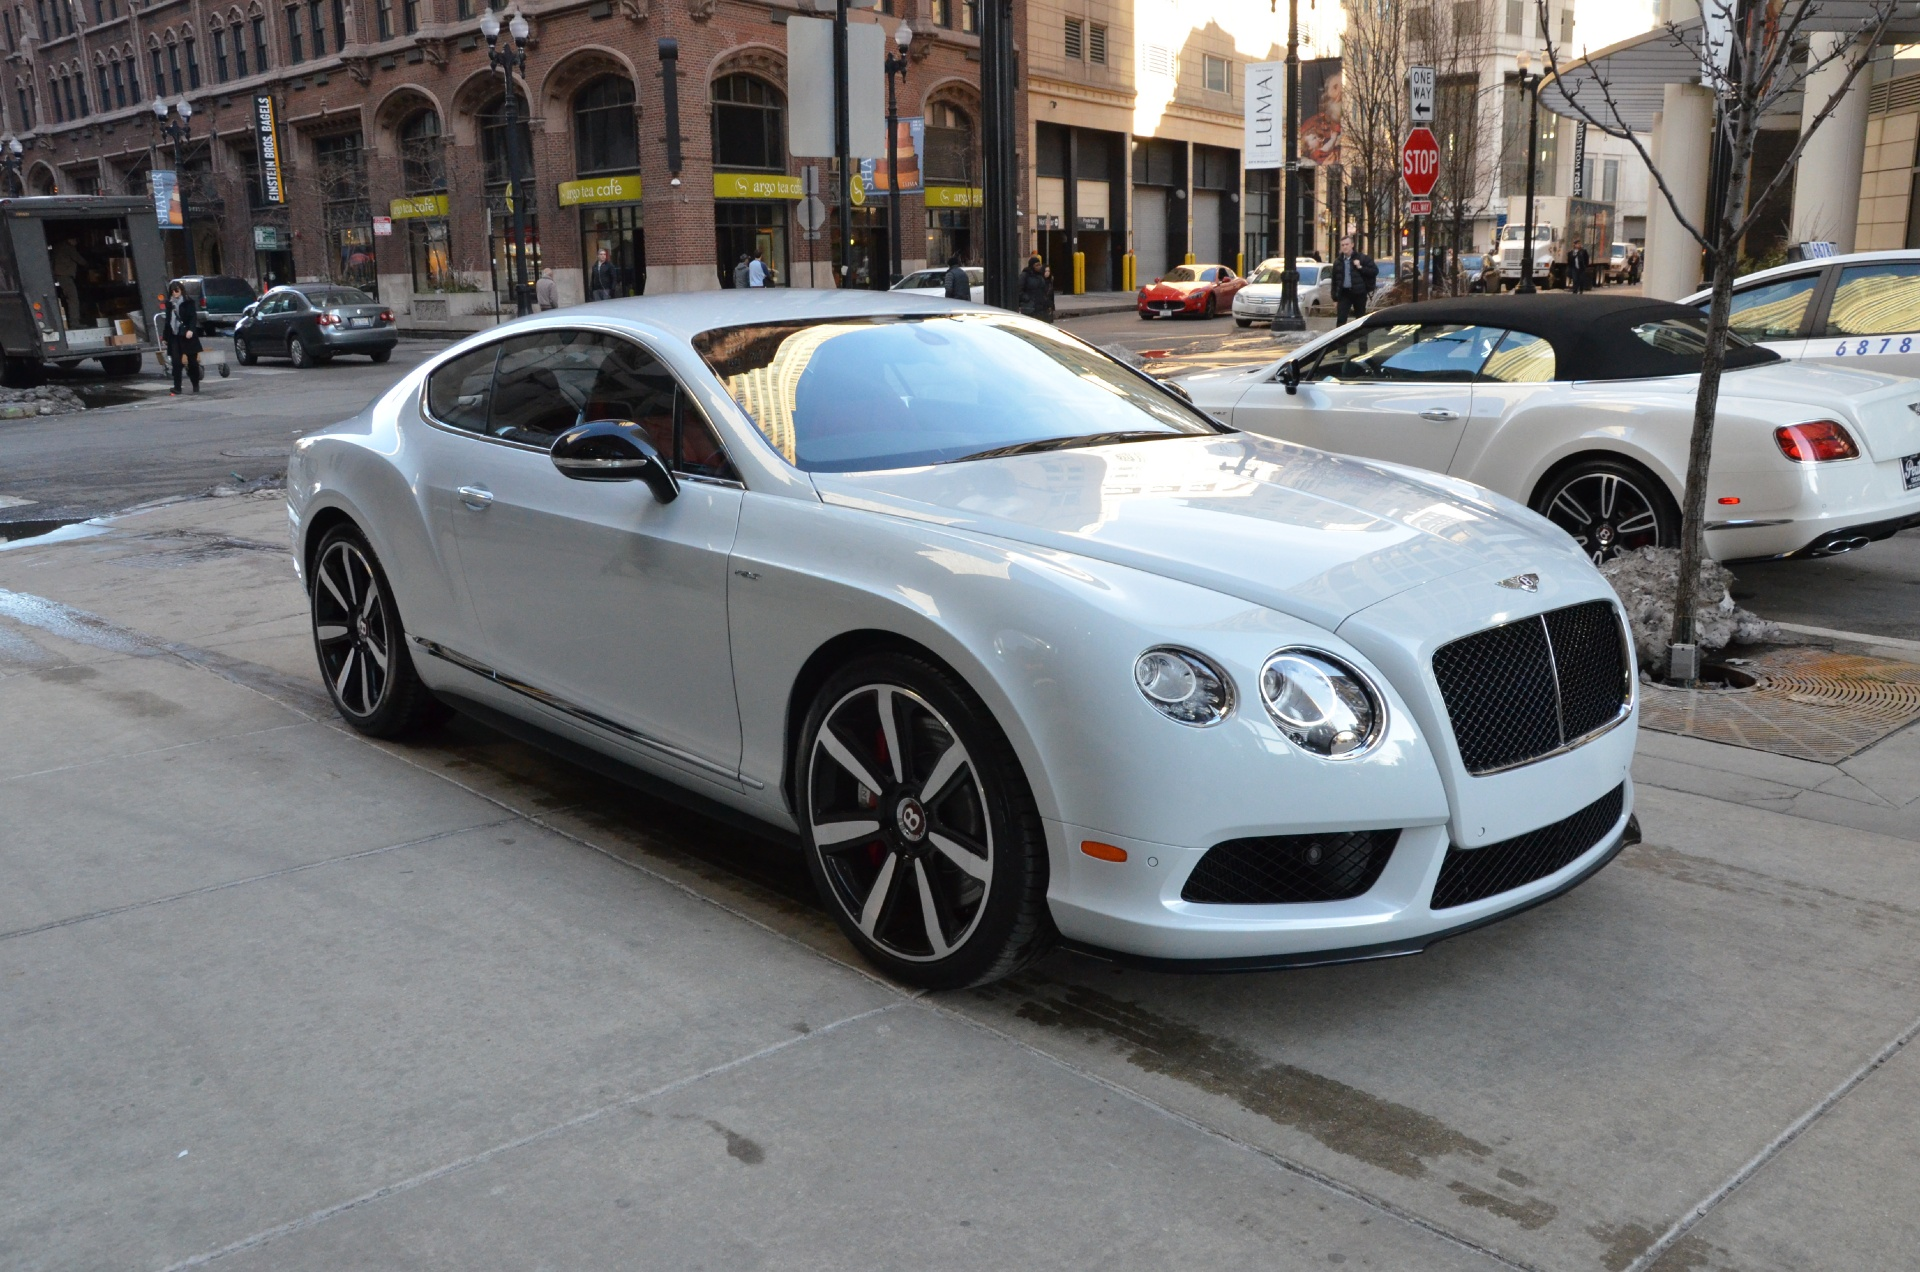 2015 bentley continental gt v8 s stock b686 s for sale near chicago il il bentley dealer. Black Bedroom Furniture Sets. Home Design Ideas